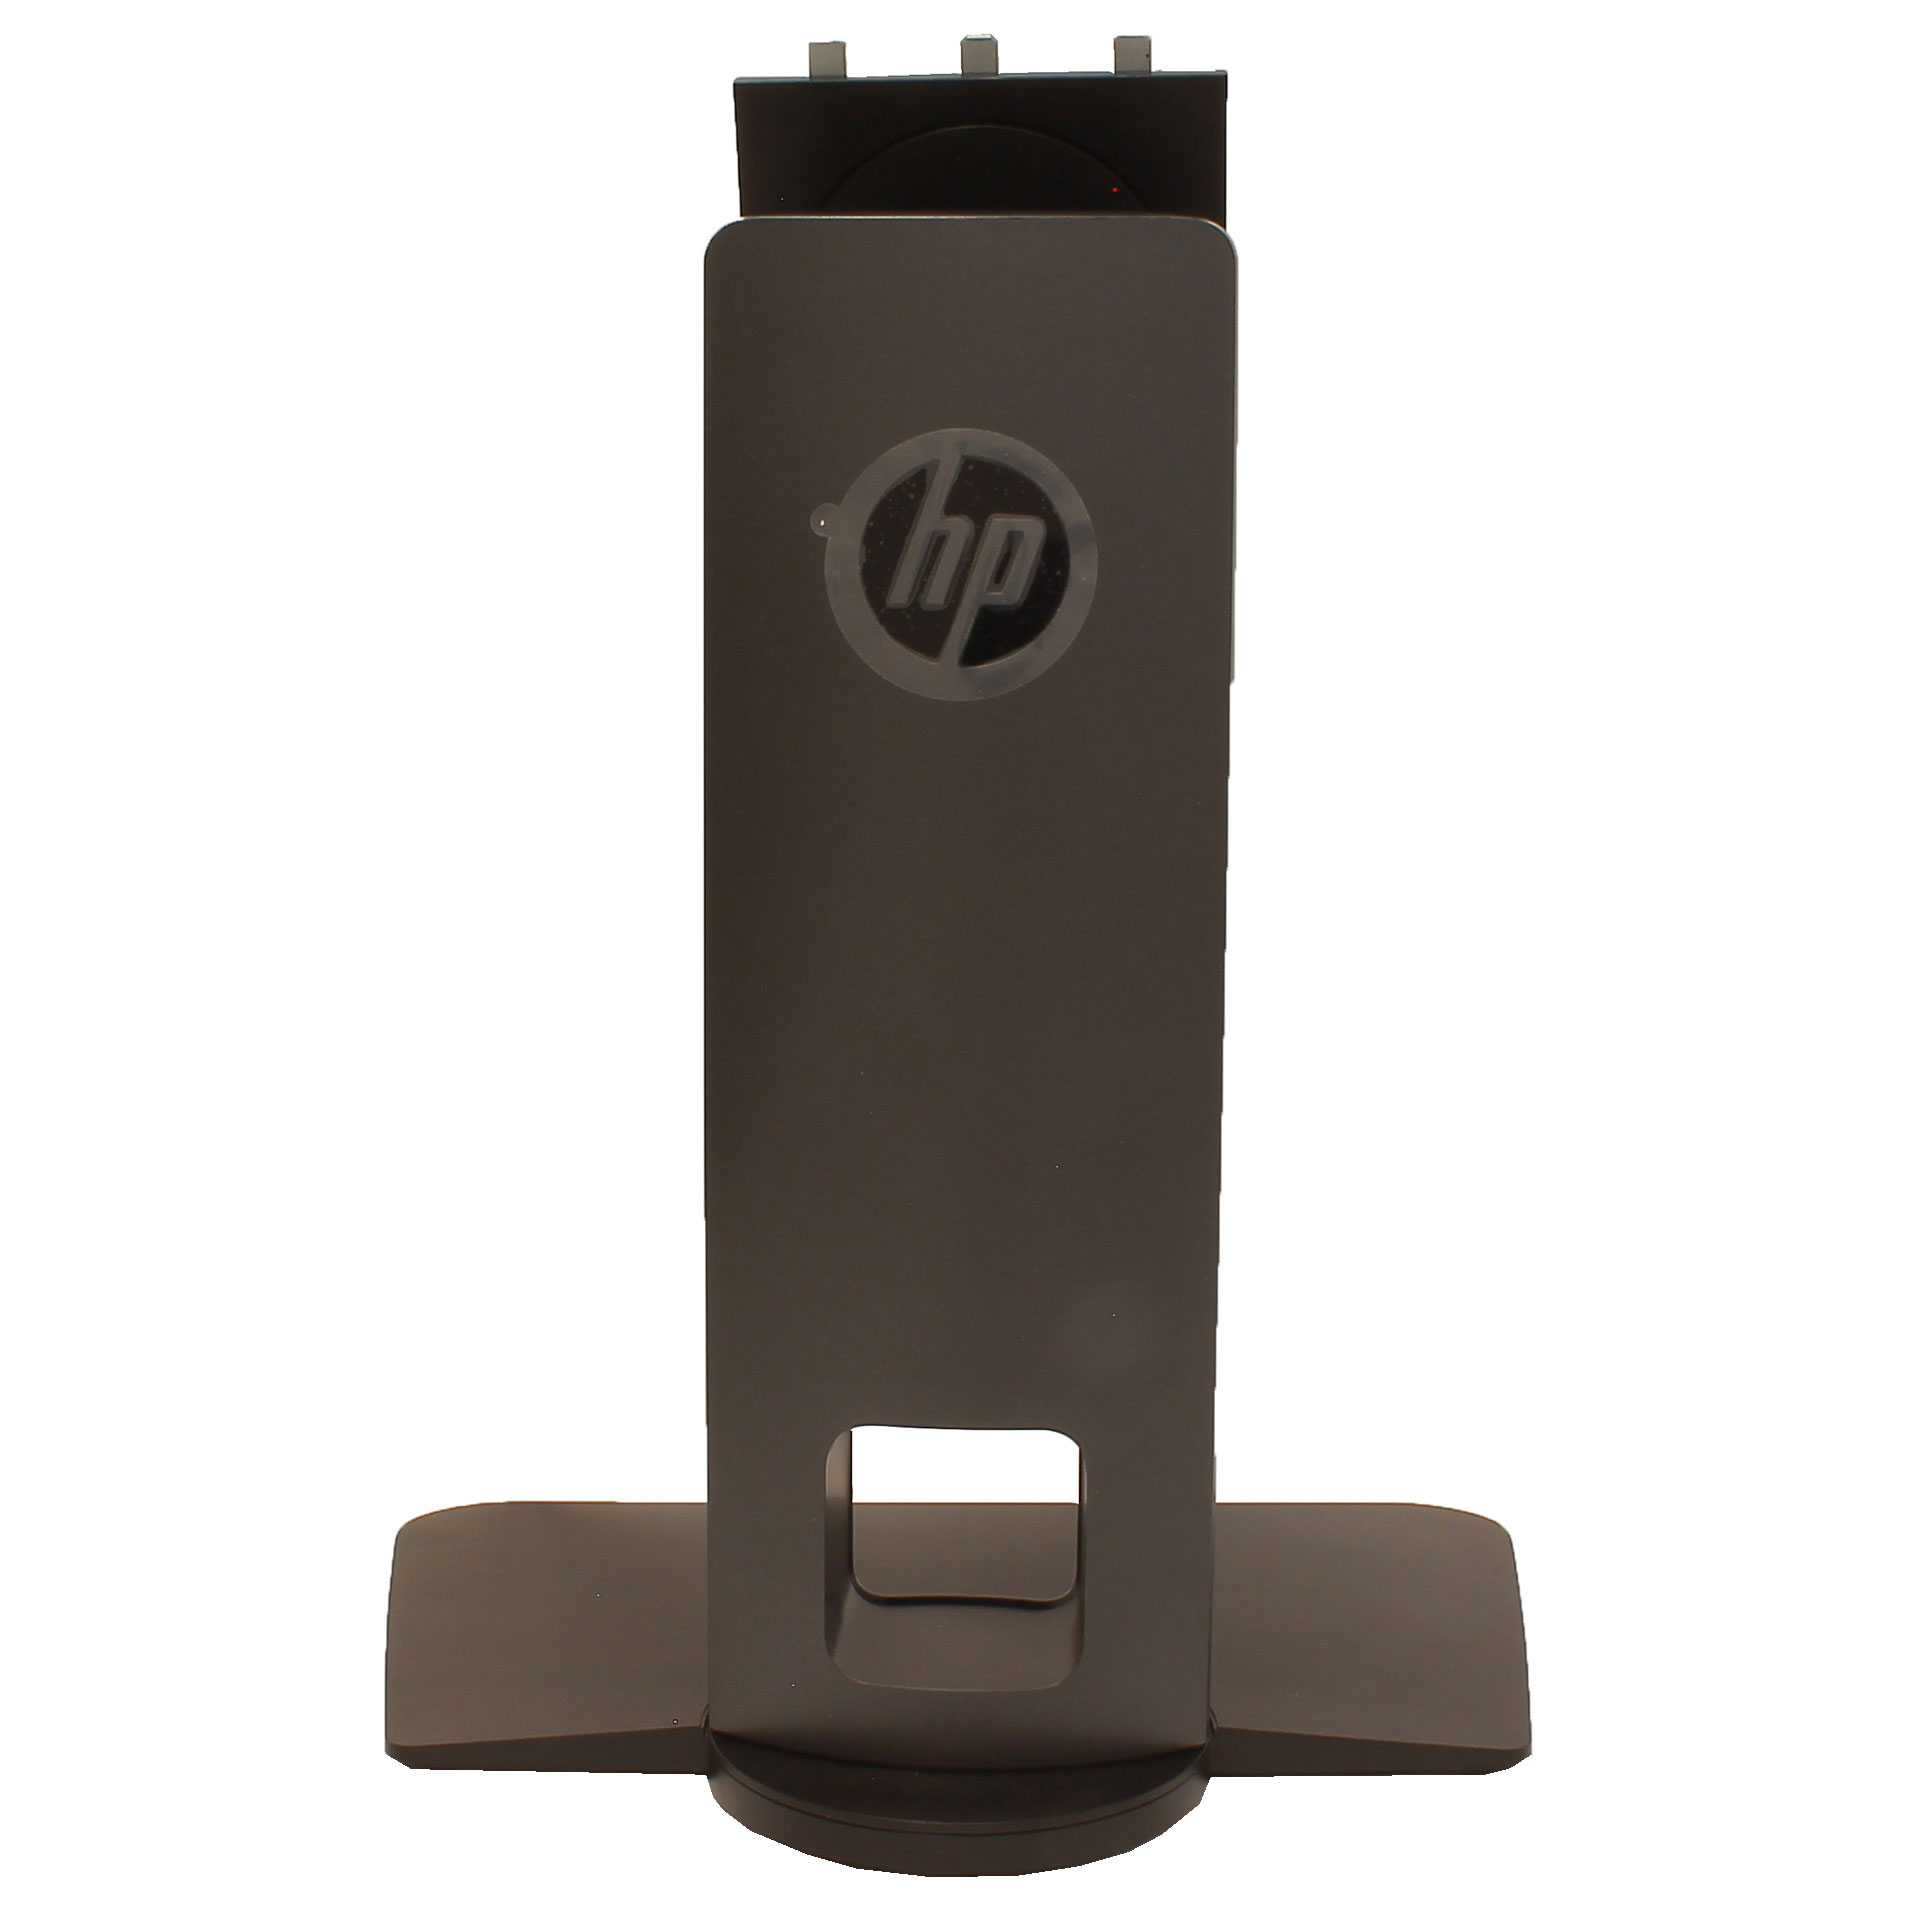 HP 724036-001 721800-701 Z30i 30-Inch Monitor Stand